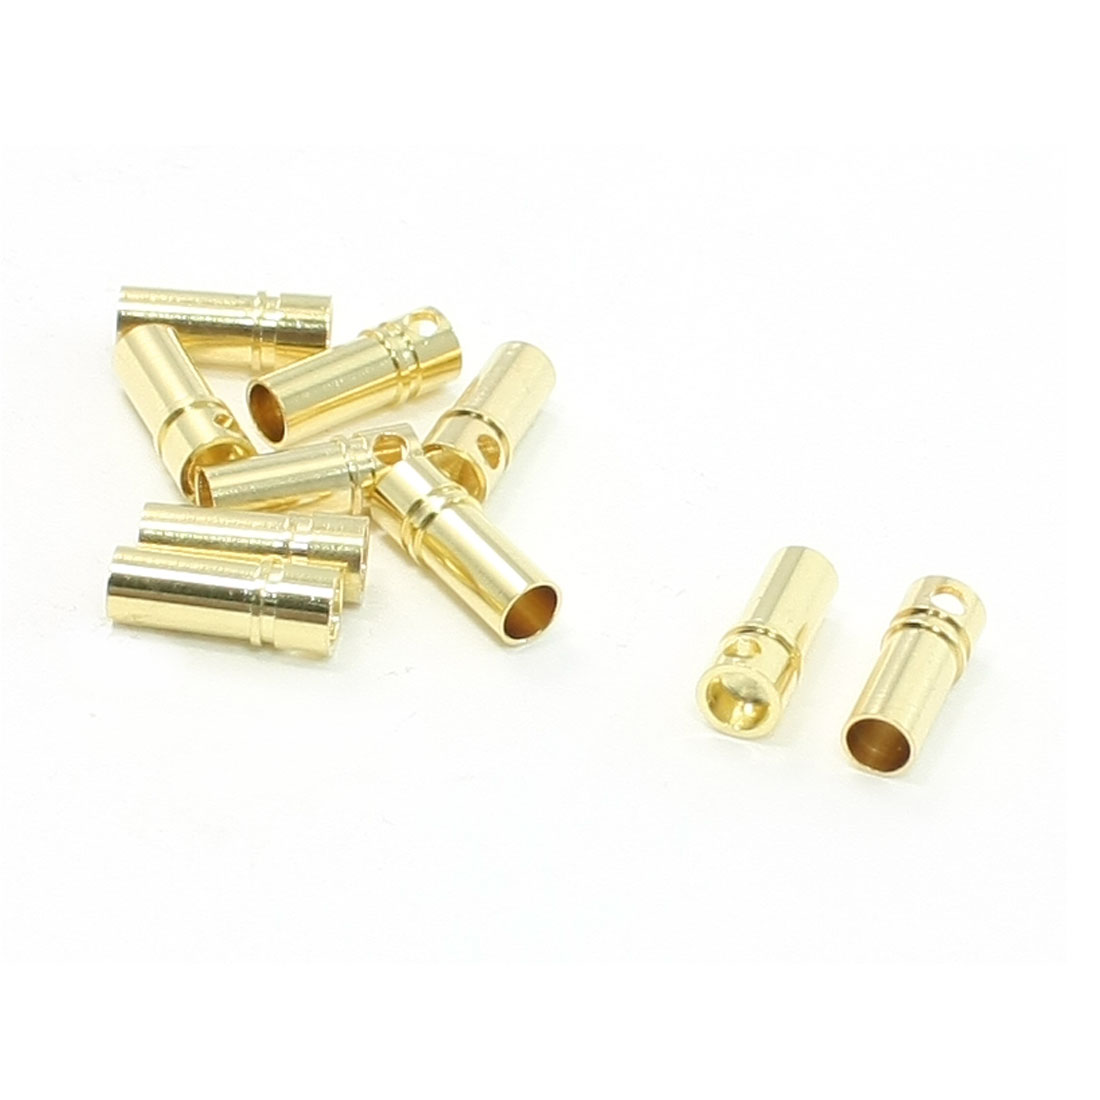 10 Pcs Female Cone Connector Replacement 3.5mm for RC DIY